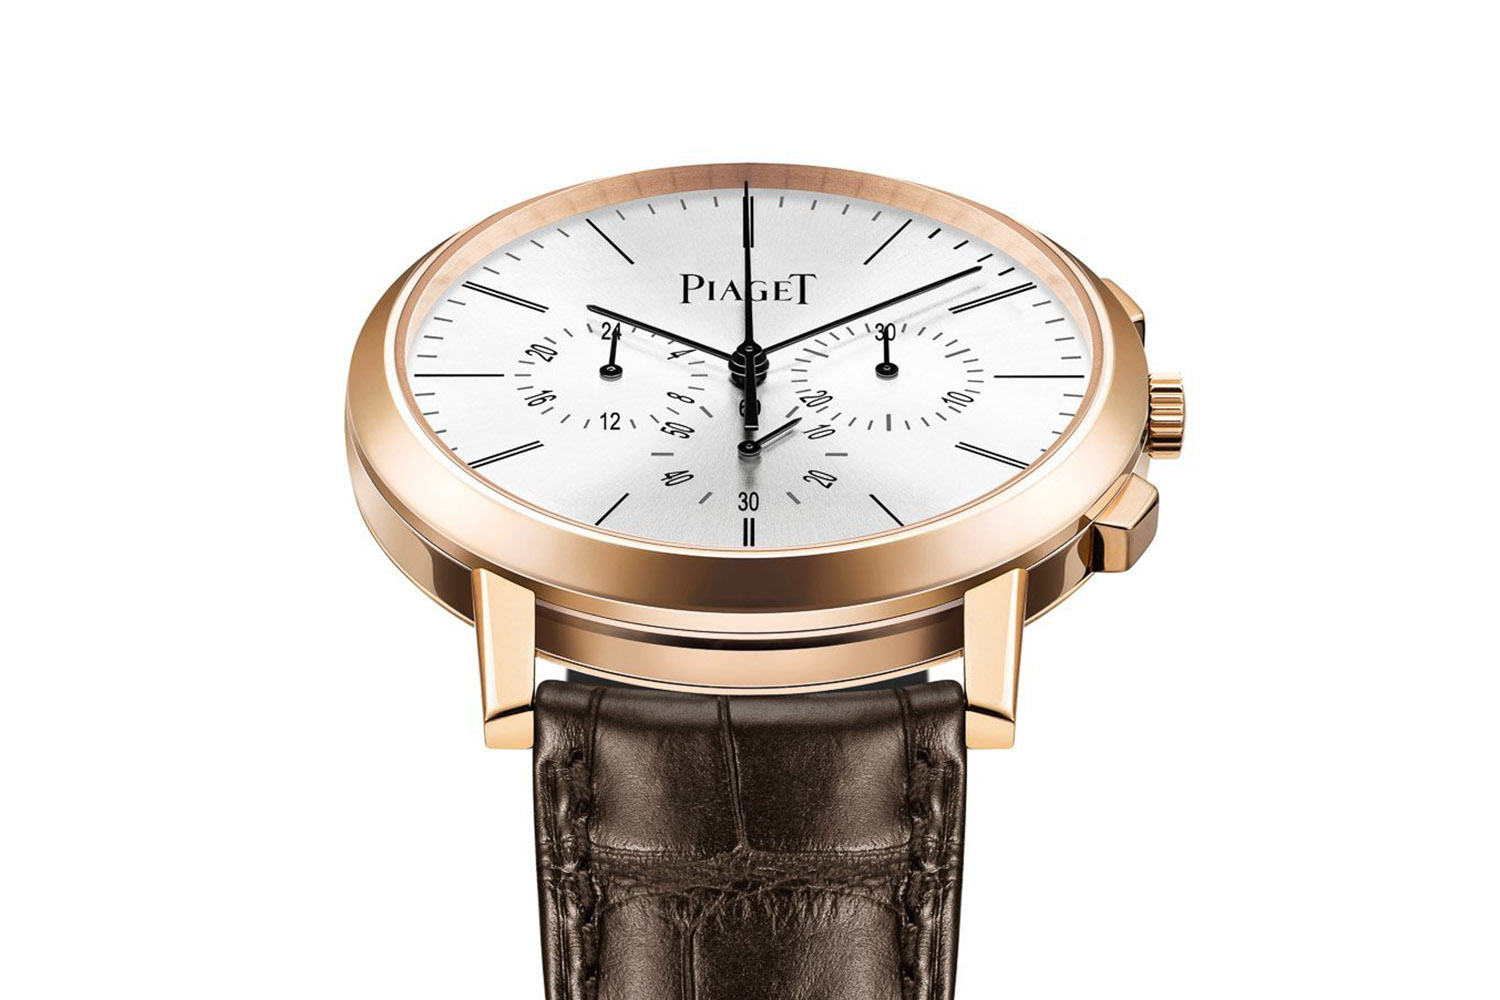 Piaget Altiplano Chronograph - world's Thinnest chronograph : world's Thinnest chronograph movement